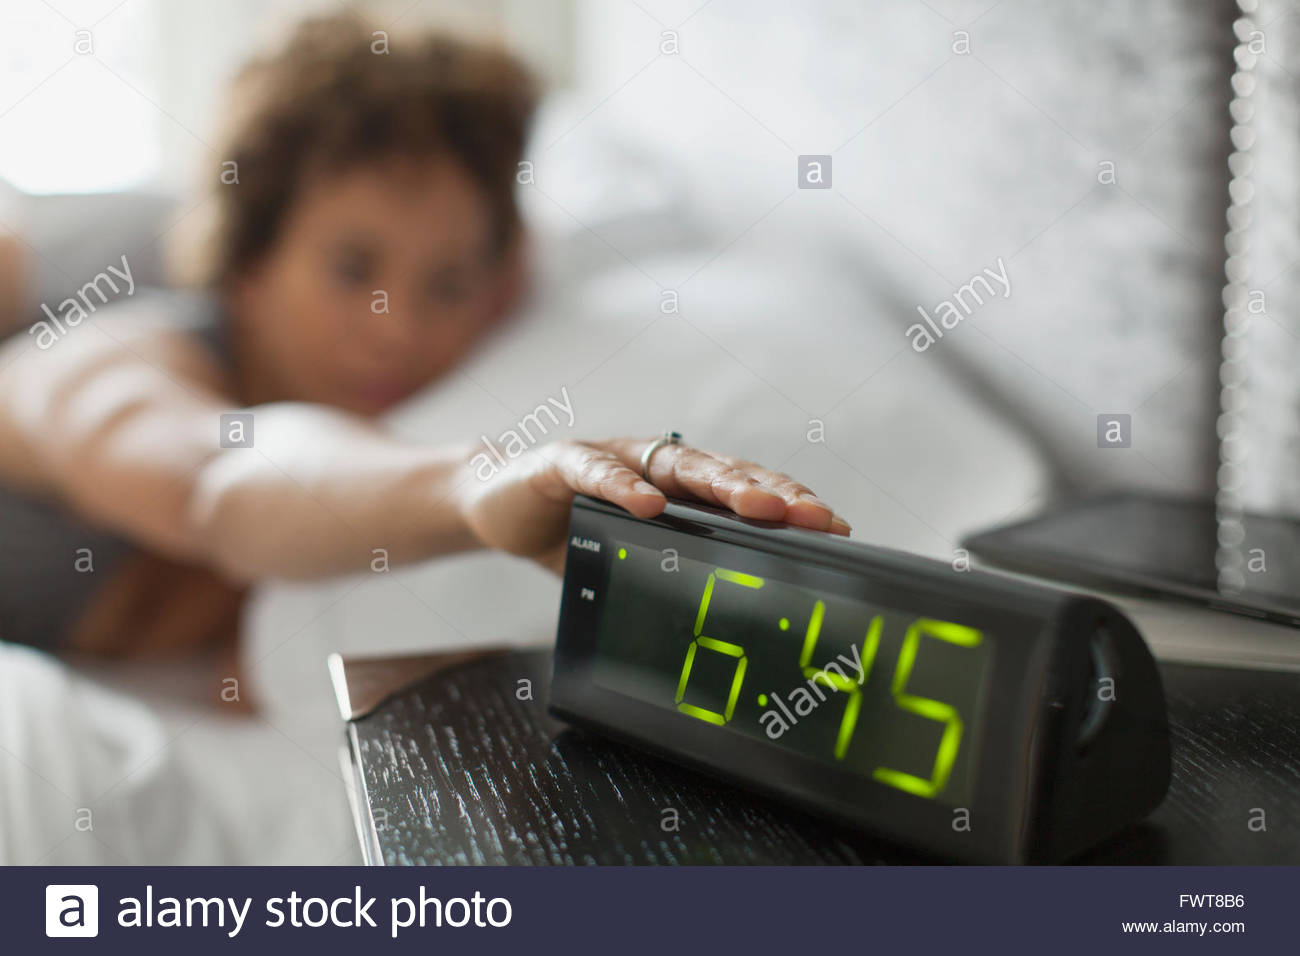 Woman reaching for snooze button on alarm clock. - Stock Image